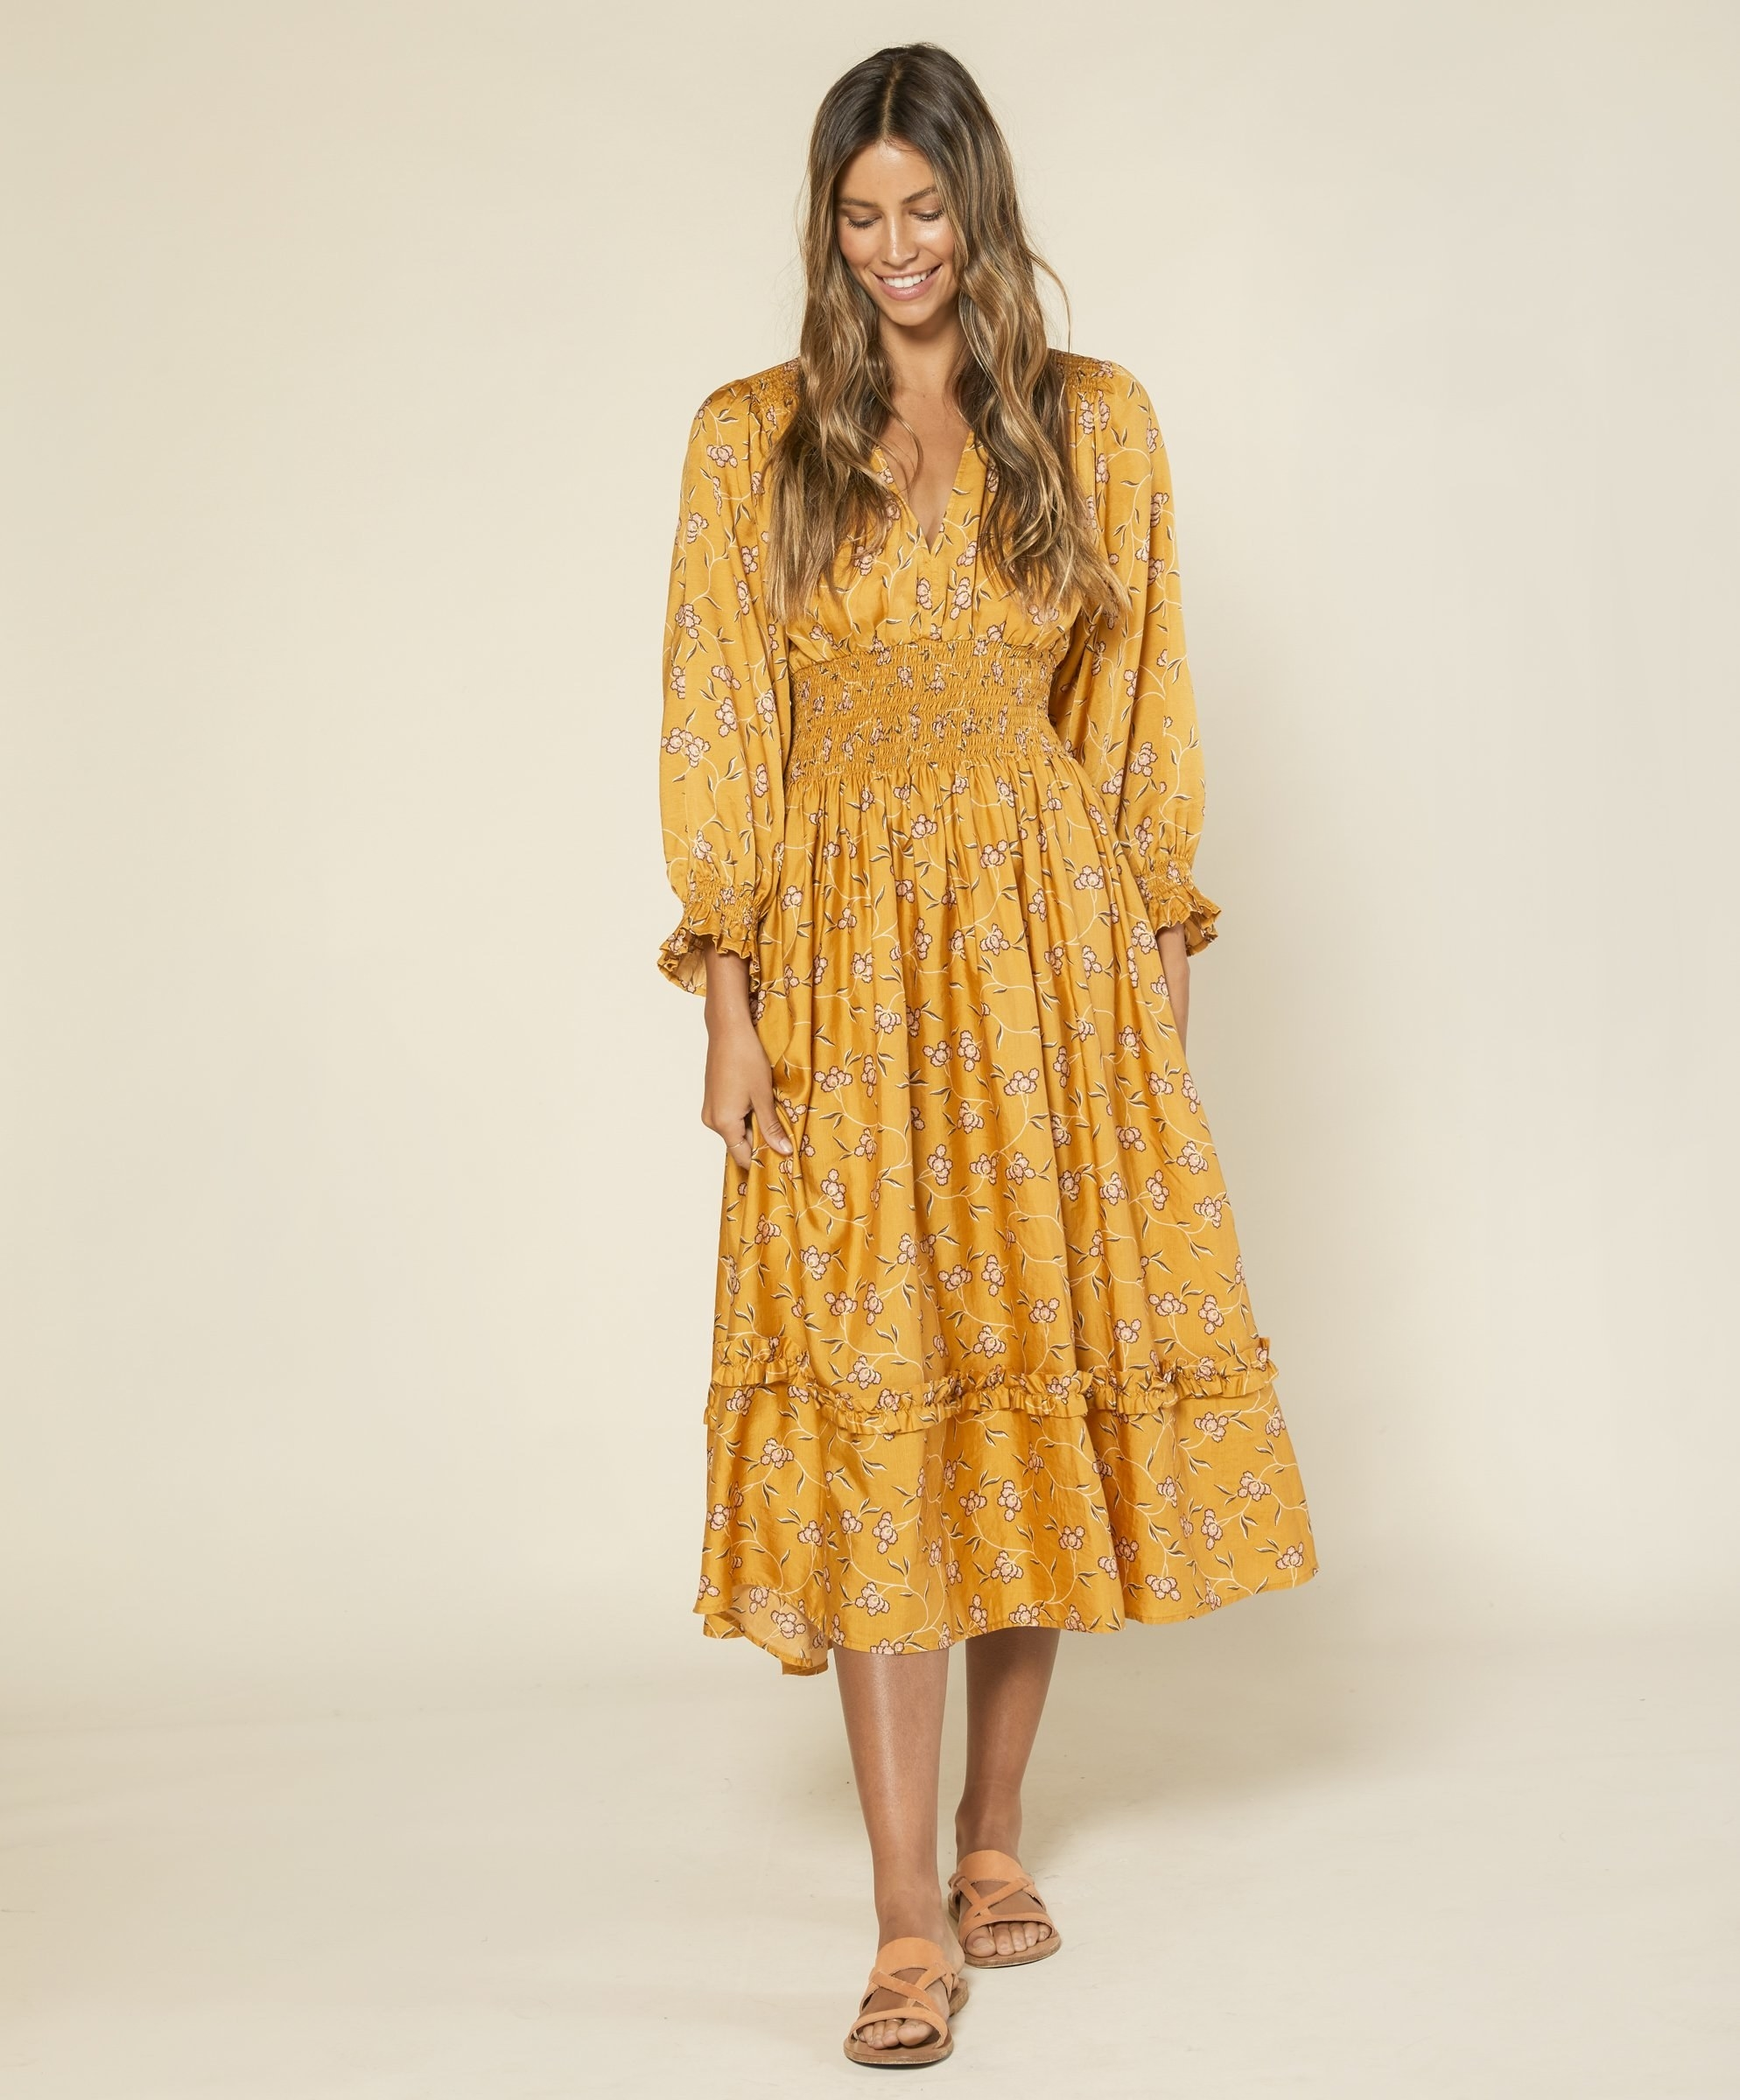 Model wearing the mid-calf length dress with elastic smocking at waist, shoulder, and sleeves in yellow with small white flowers on it